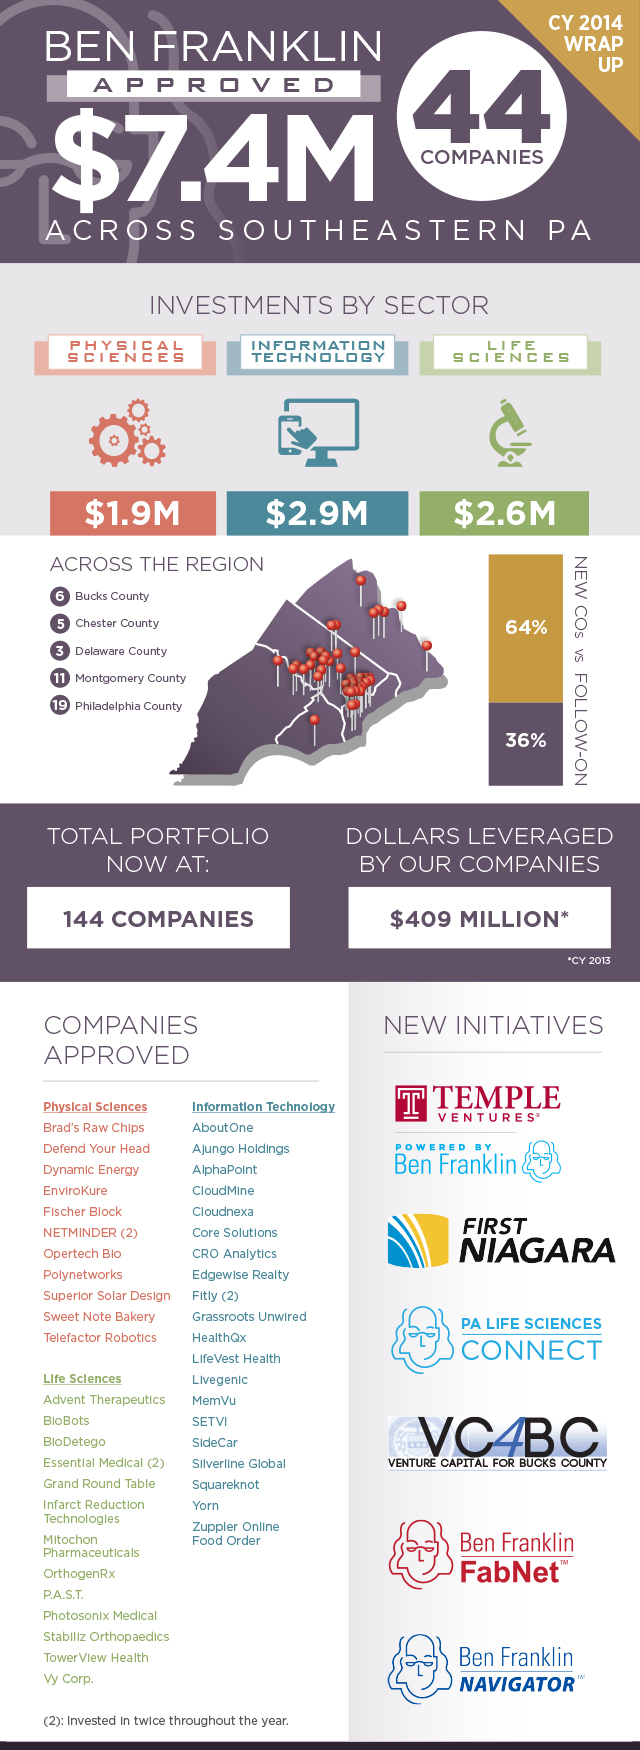 CY14---Ben-Franklin-Invests-Infographic---CY-Wrap-Up